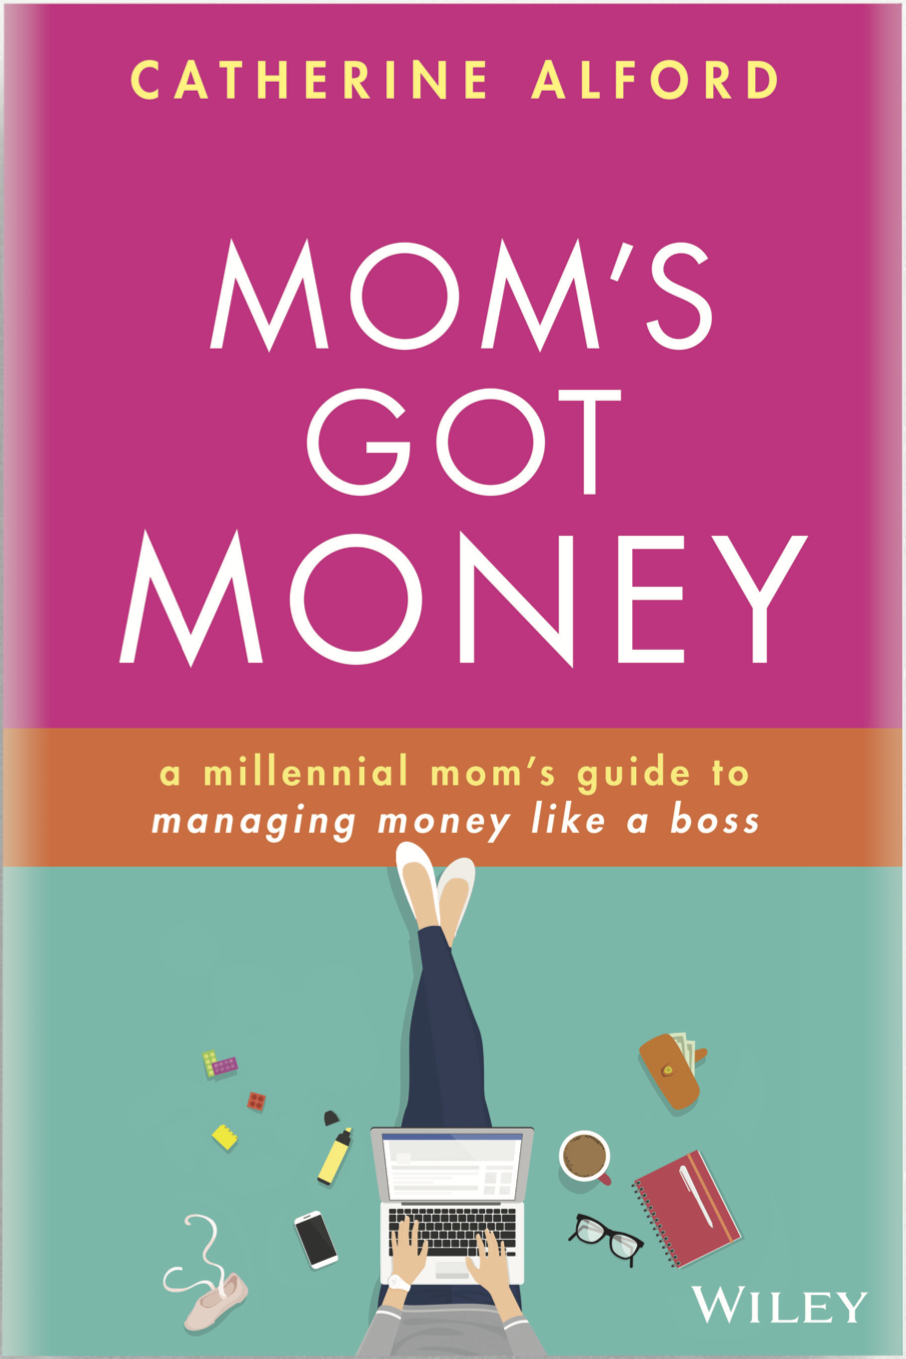 Mom's Got Money Book Cover